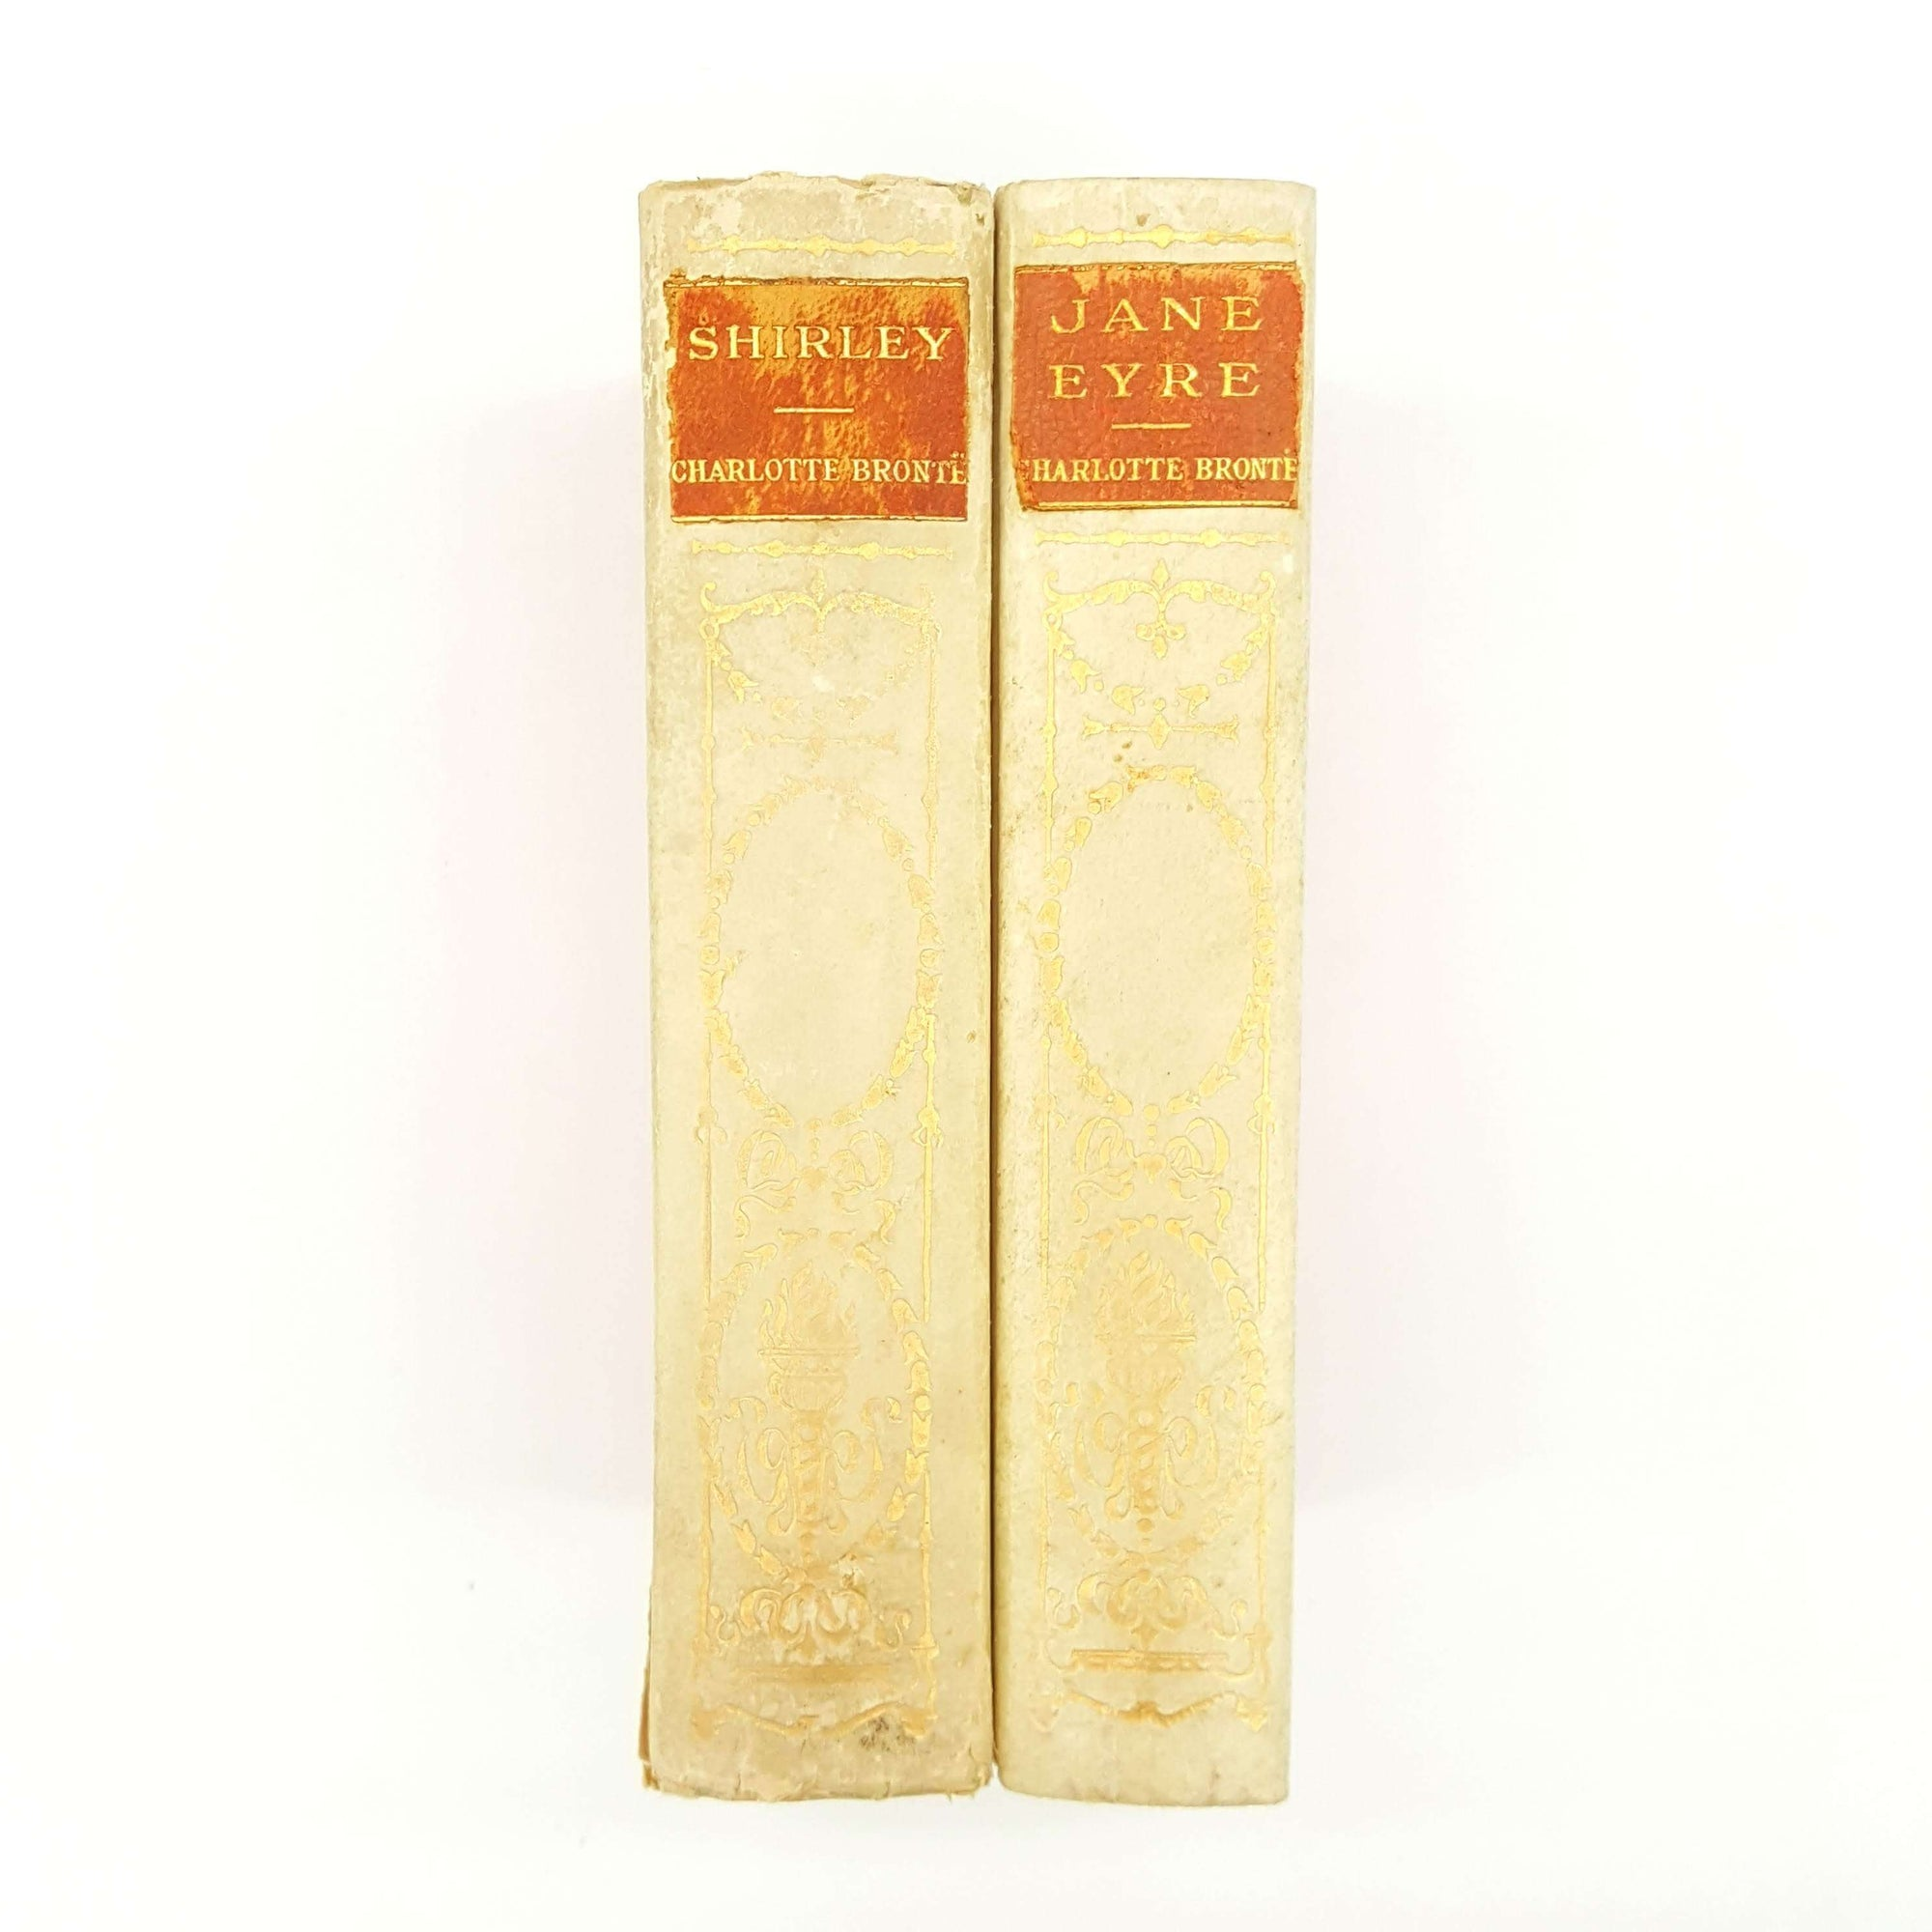 Charlotte Brontë - Jane Eyre and Shirley 1907 Country House Library